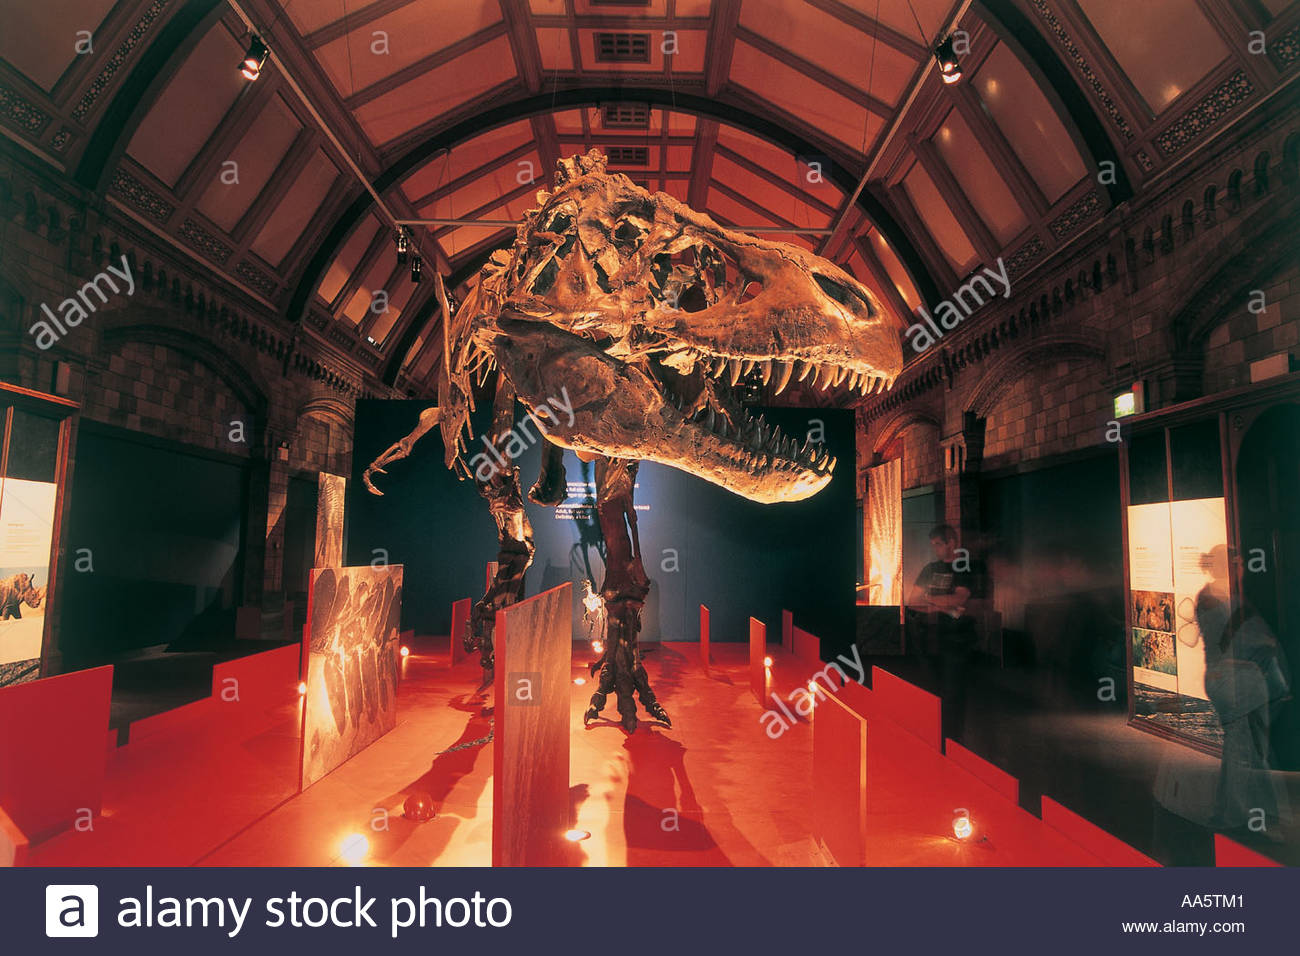 Tyrannosaurus rex in the Natural History museum London - Stock Image